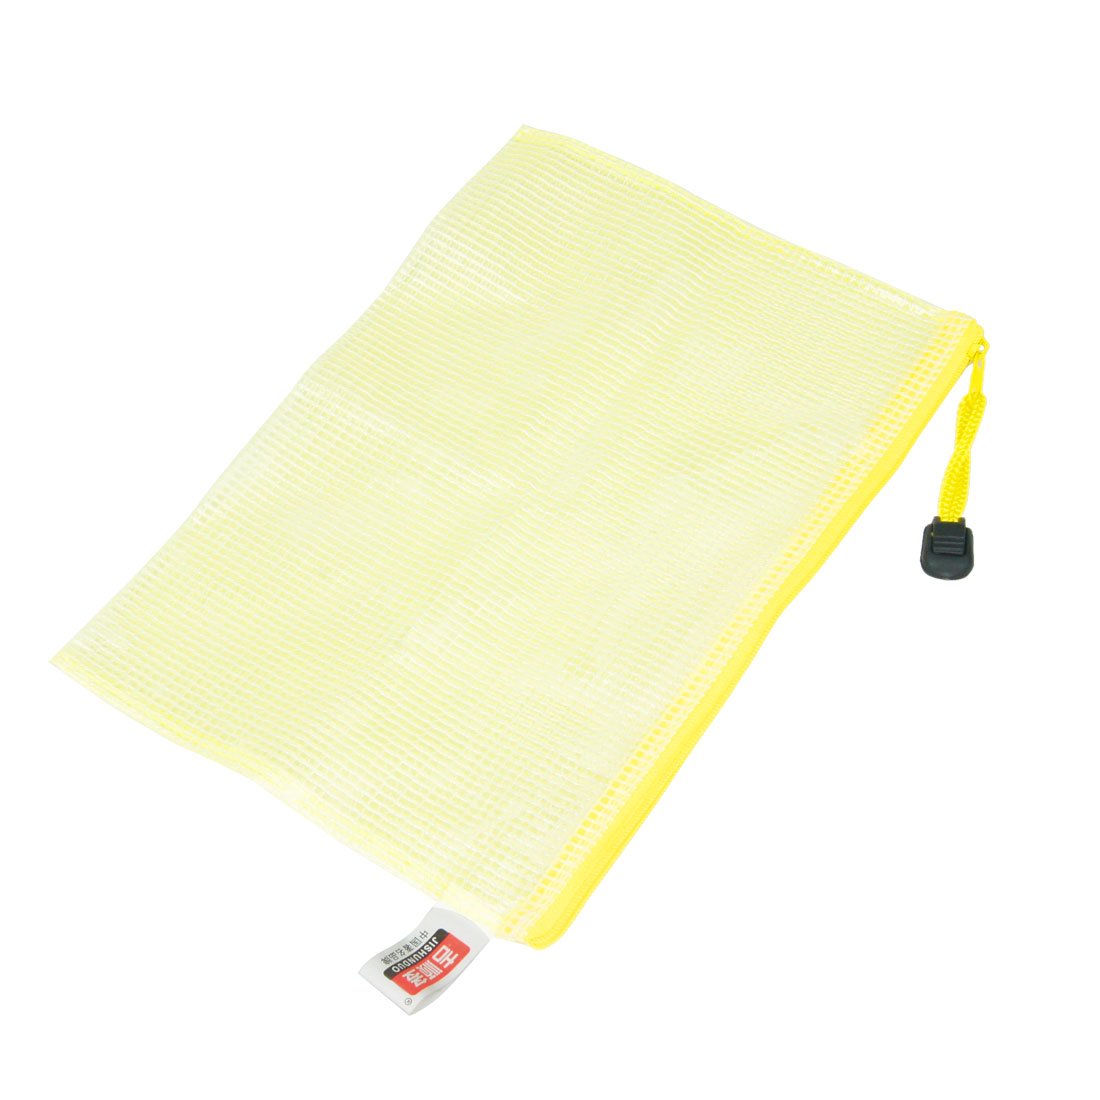 Yellow Soft Plastic Zip up Document Files Bags 2 Pcs for A5 Size Paper